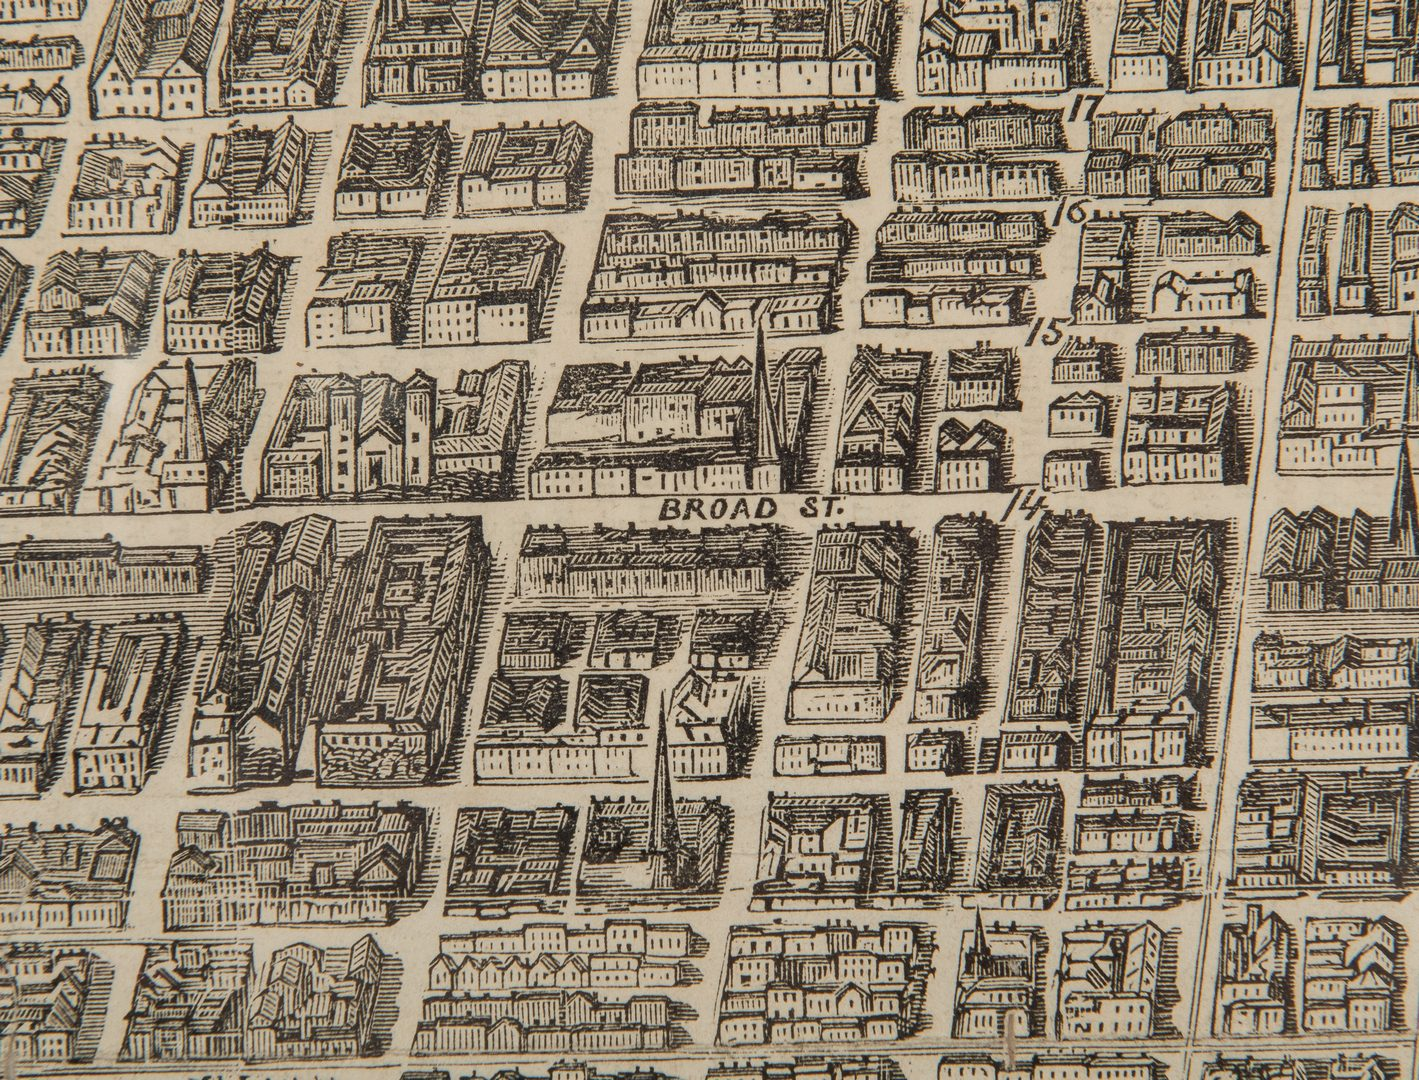 Lot 166: Harper's Weekly, Bird's Eye View Map of Philadelphia, 1876